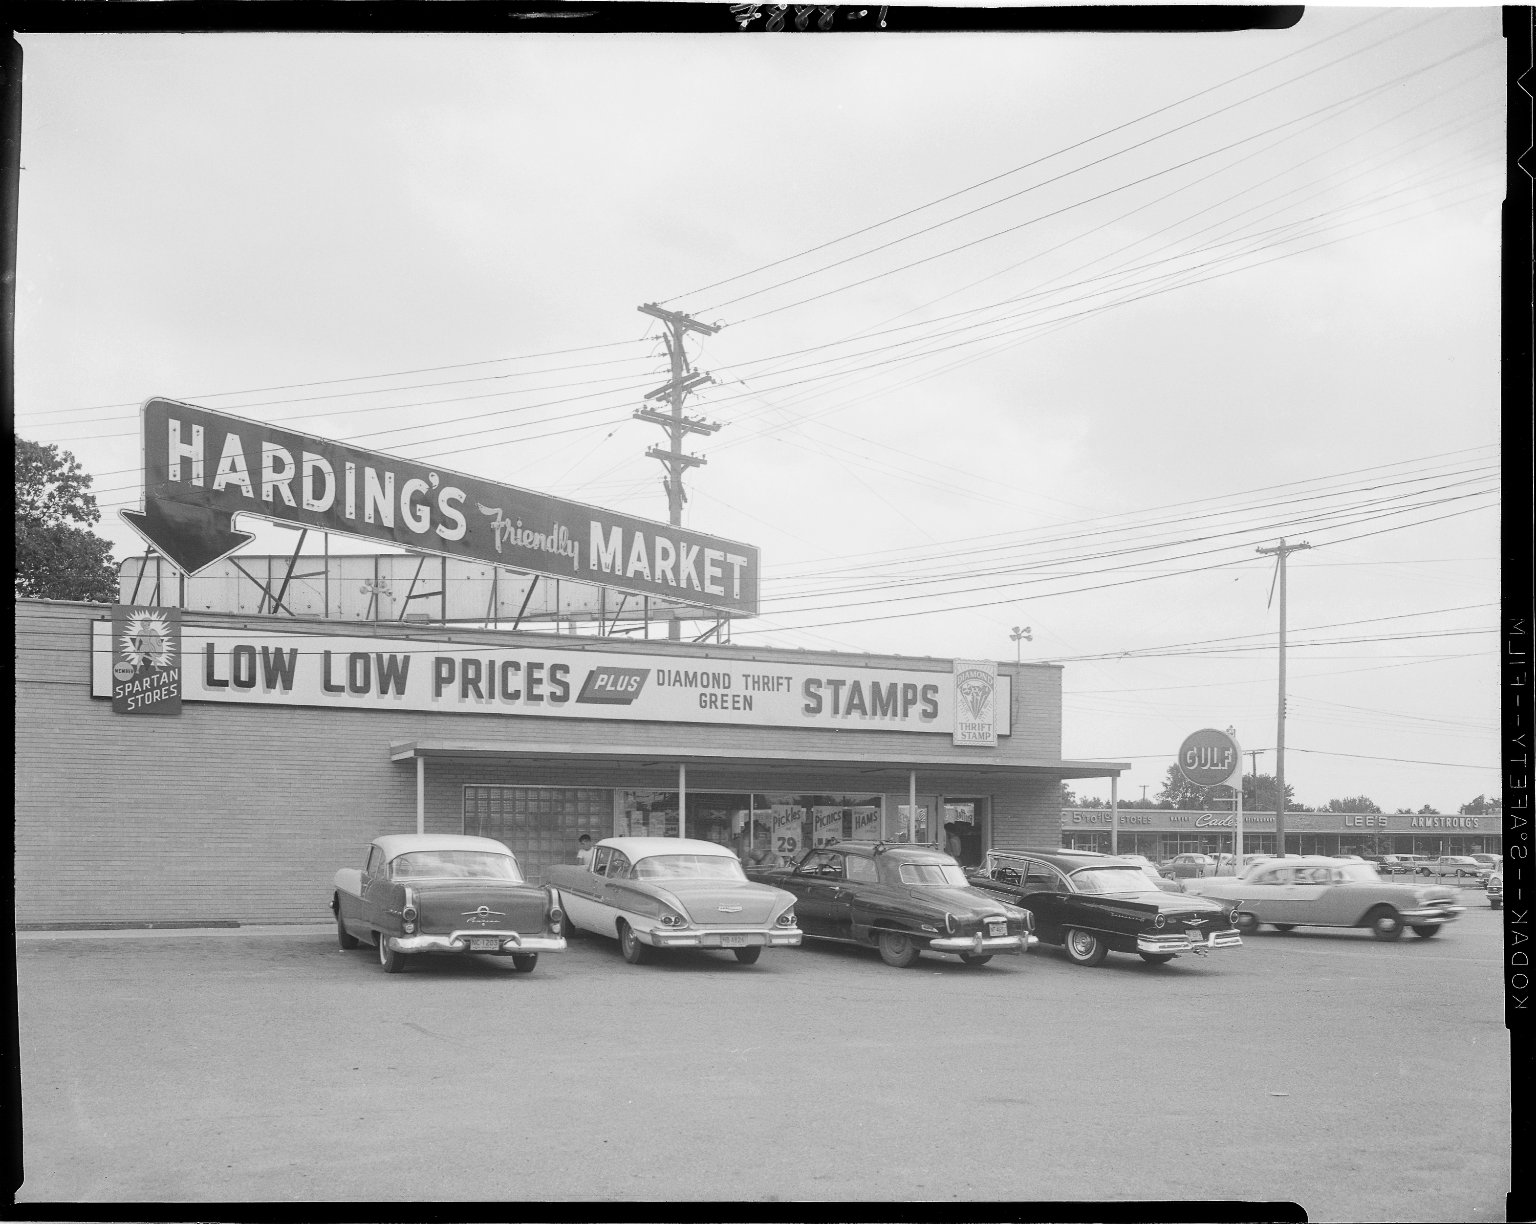 Harding's Friendly Market, 3128 Portage Road, exterior